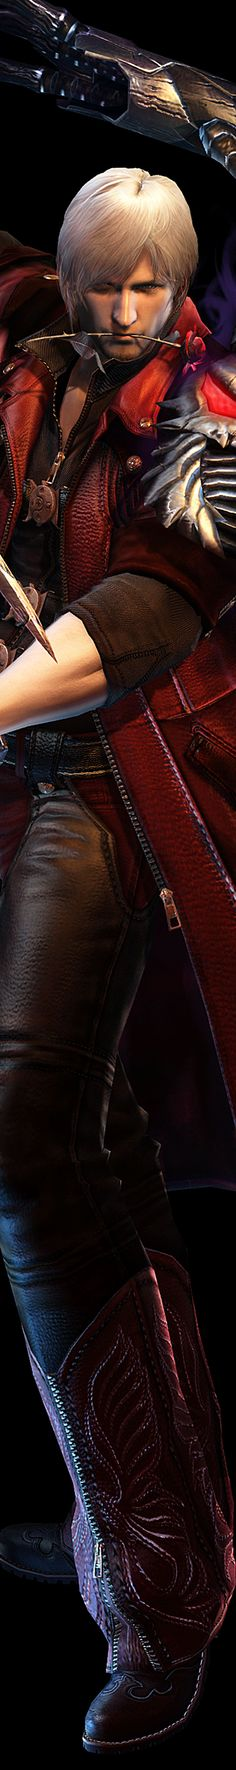 Dante as he appeared in Devil May Cry 4. For a video game character, he is a pretty good looking one.